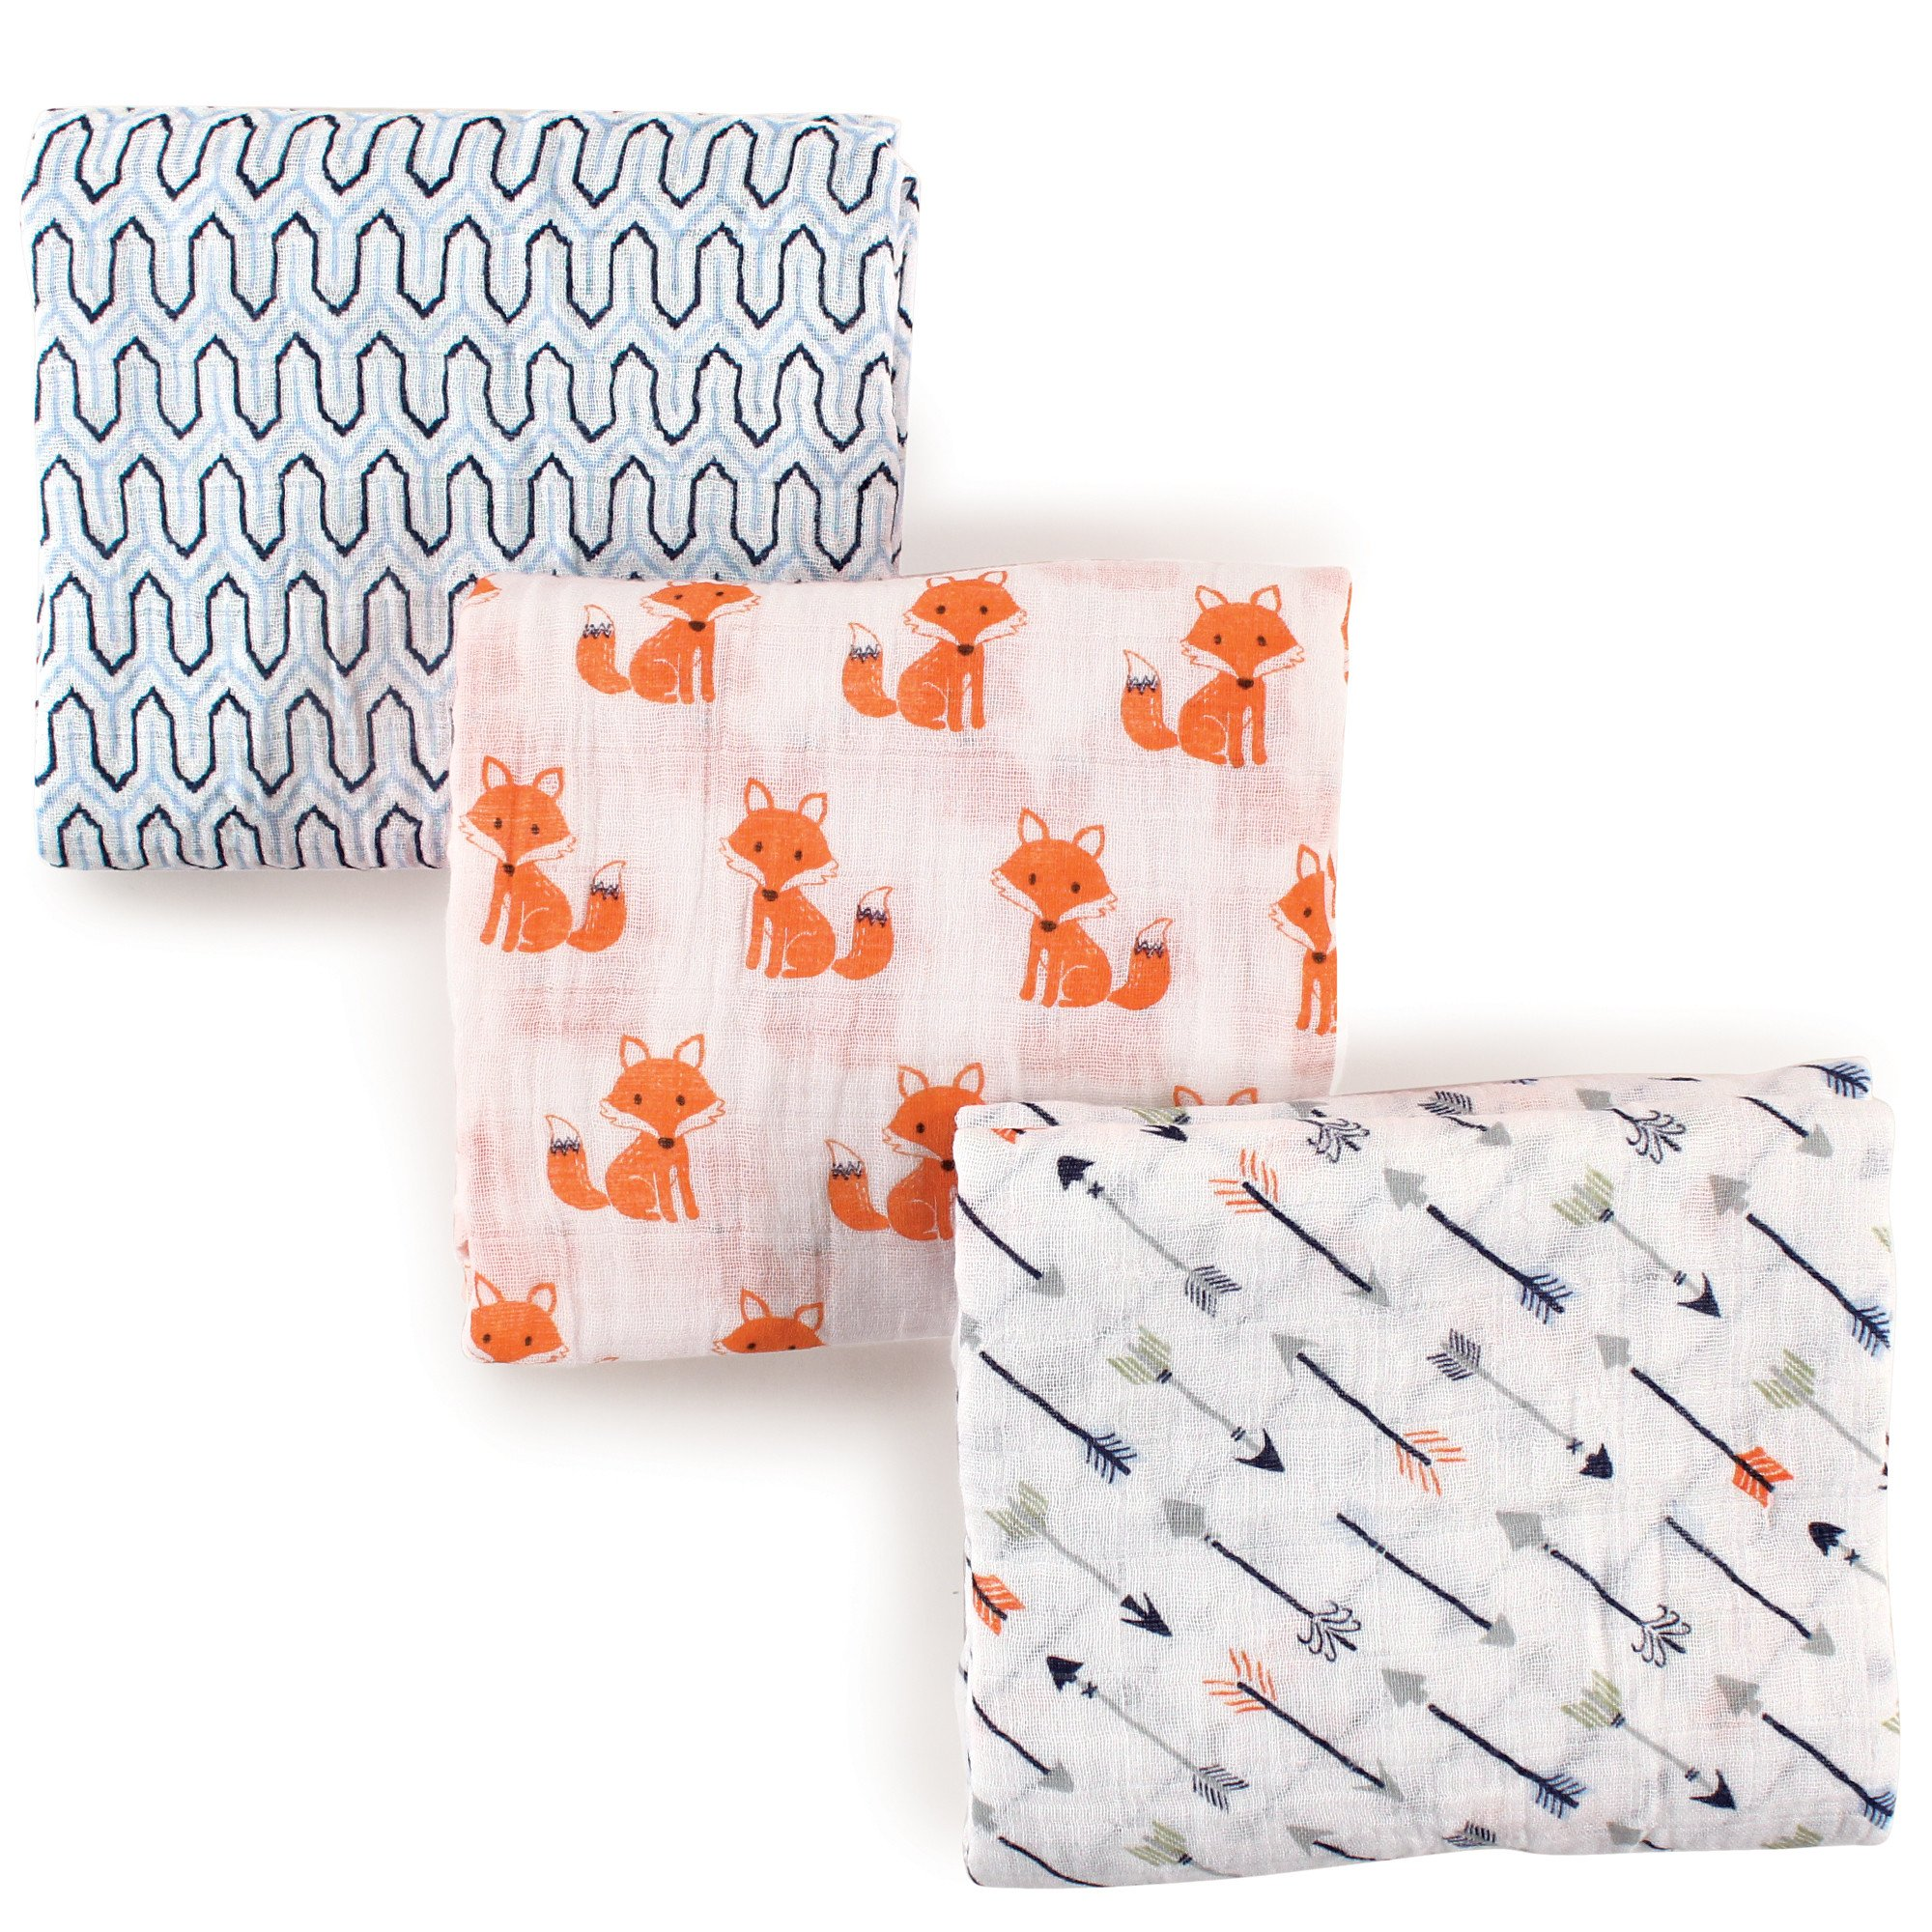 Hudson Baby Muslin Swaddle Blankets, Foxes by Hudson Baby